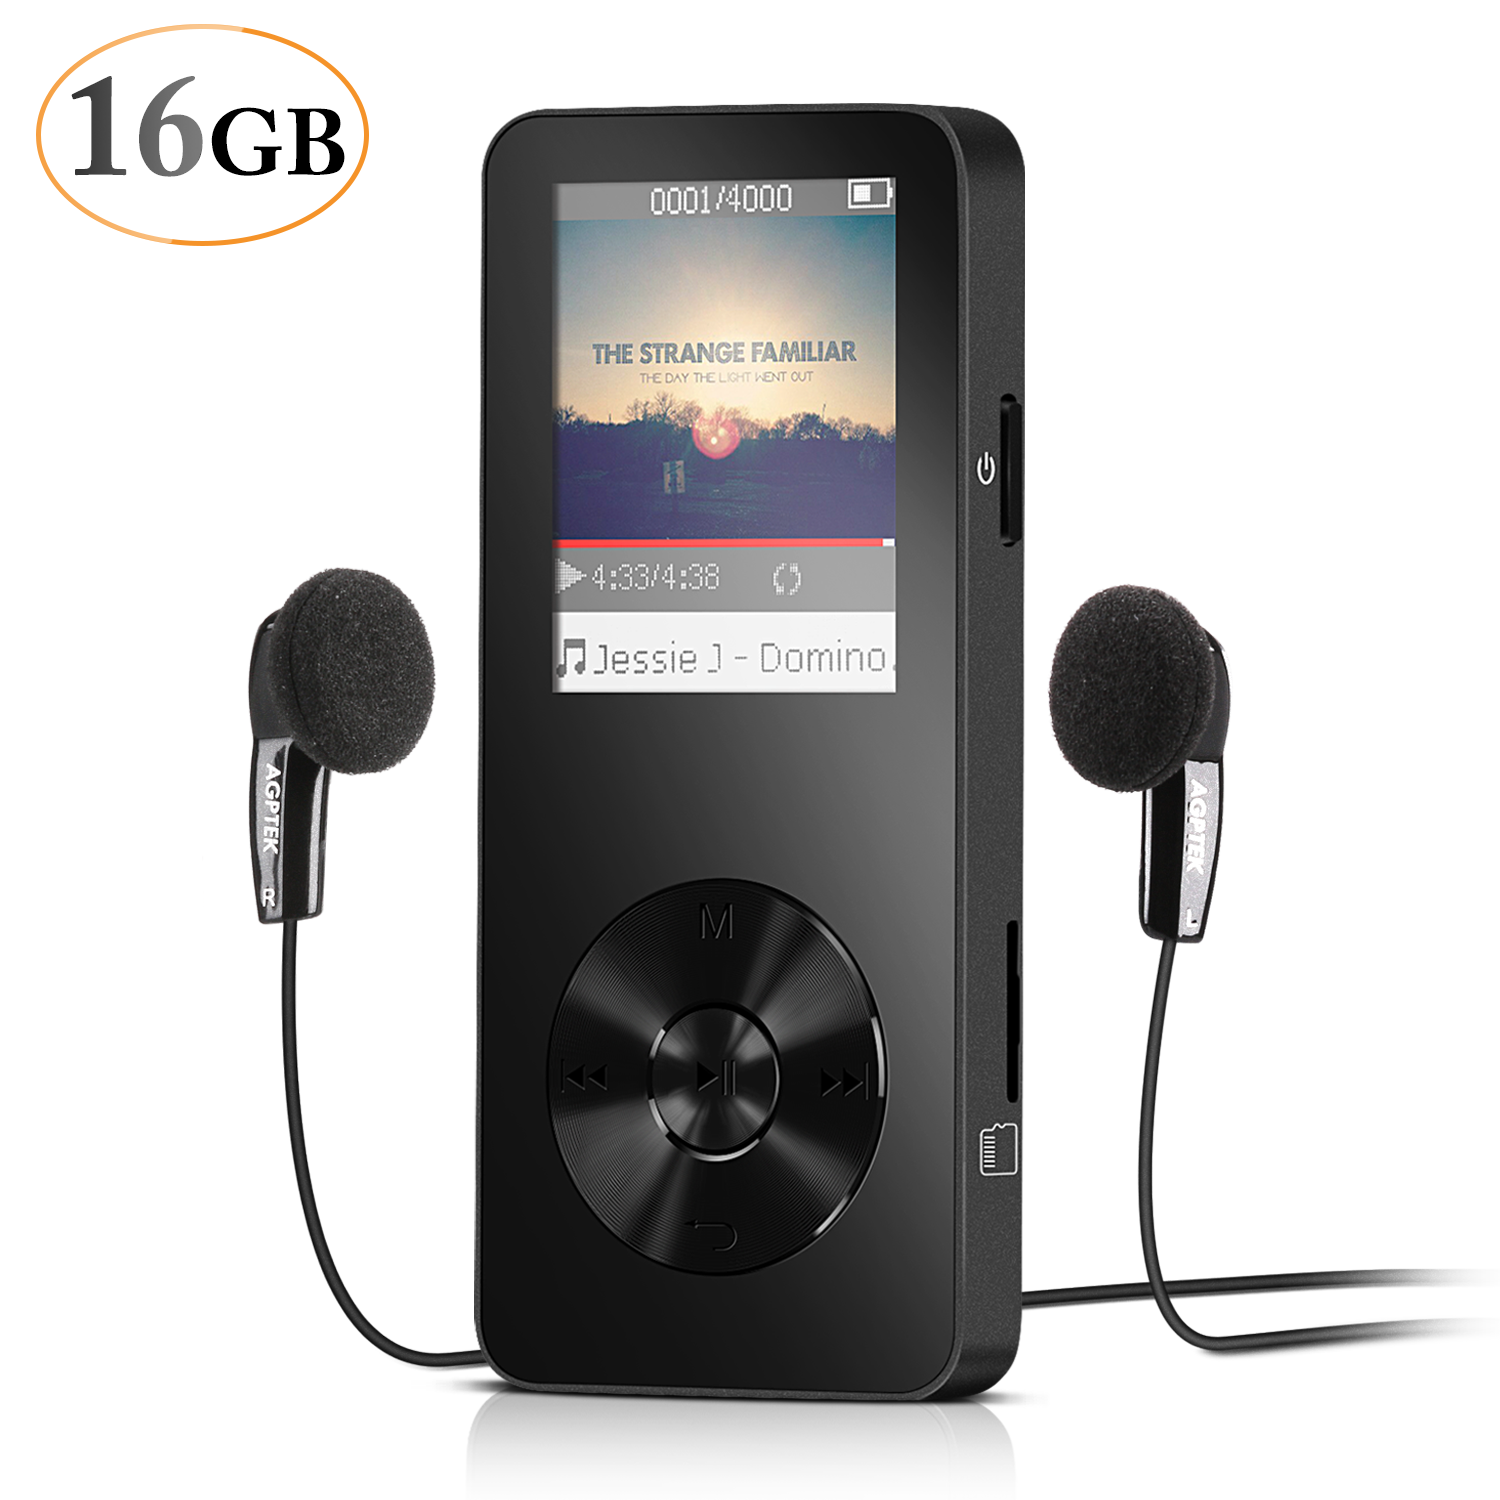 AGPtEK M28 16GB Lossless Sound Music Player with 1.8 Inch Screen,Metal Shell,Support up to 64GB,HD Headphone,Adjustable Sport Armband,Black